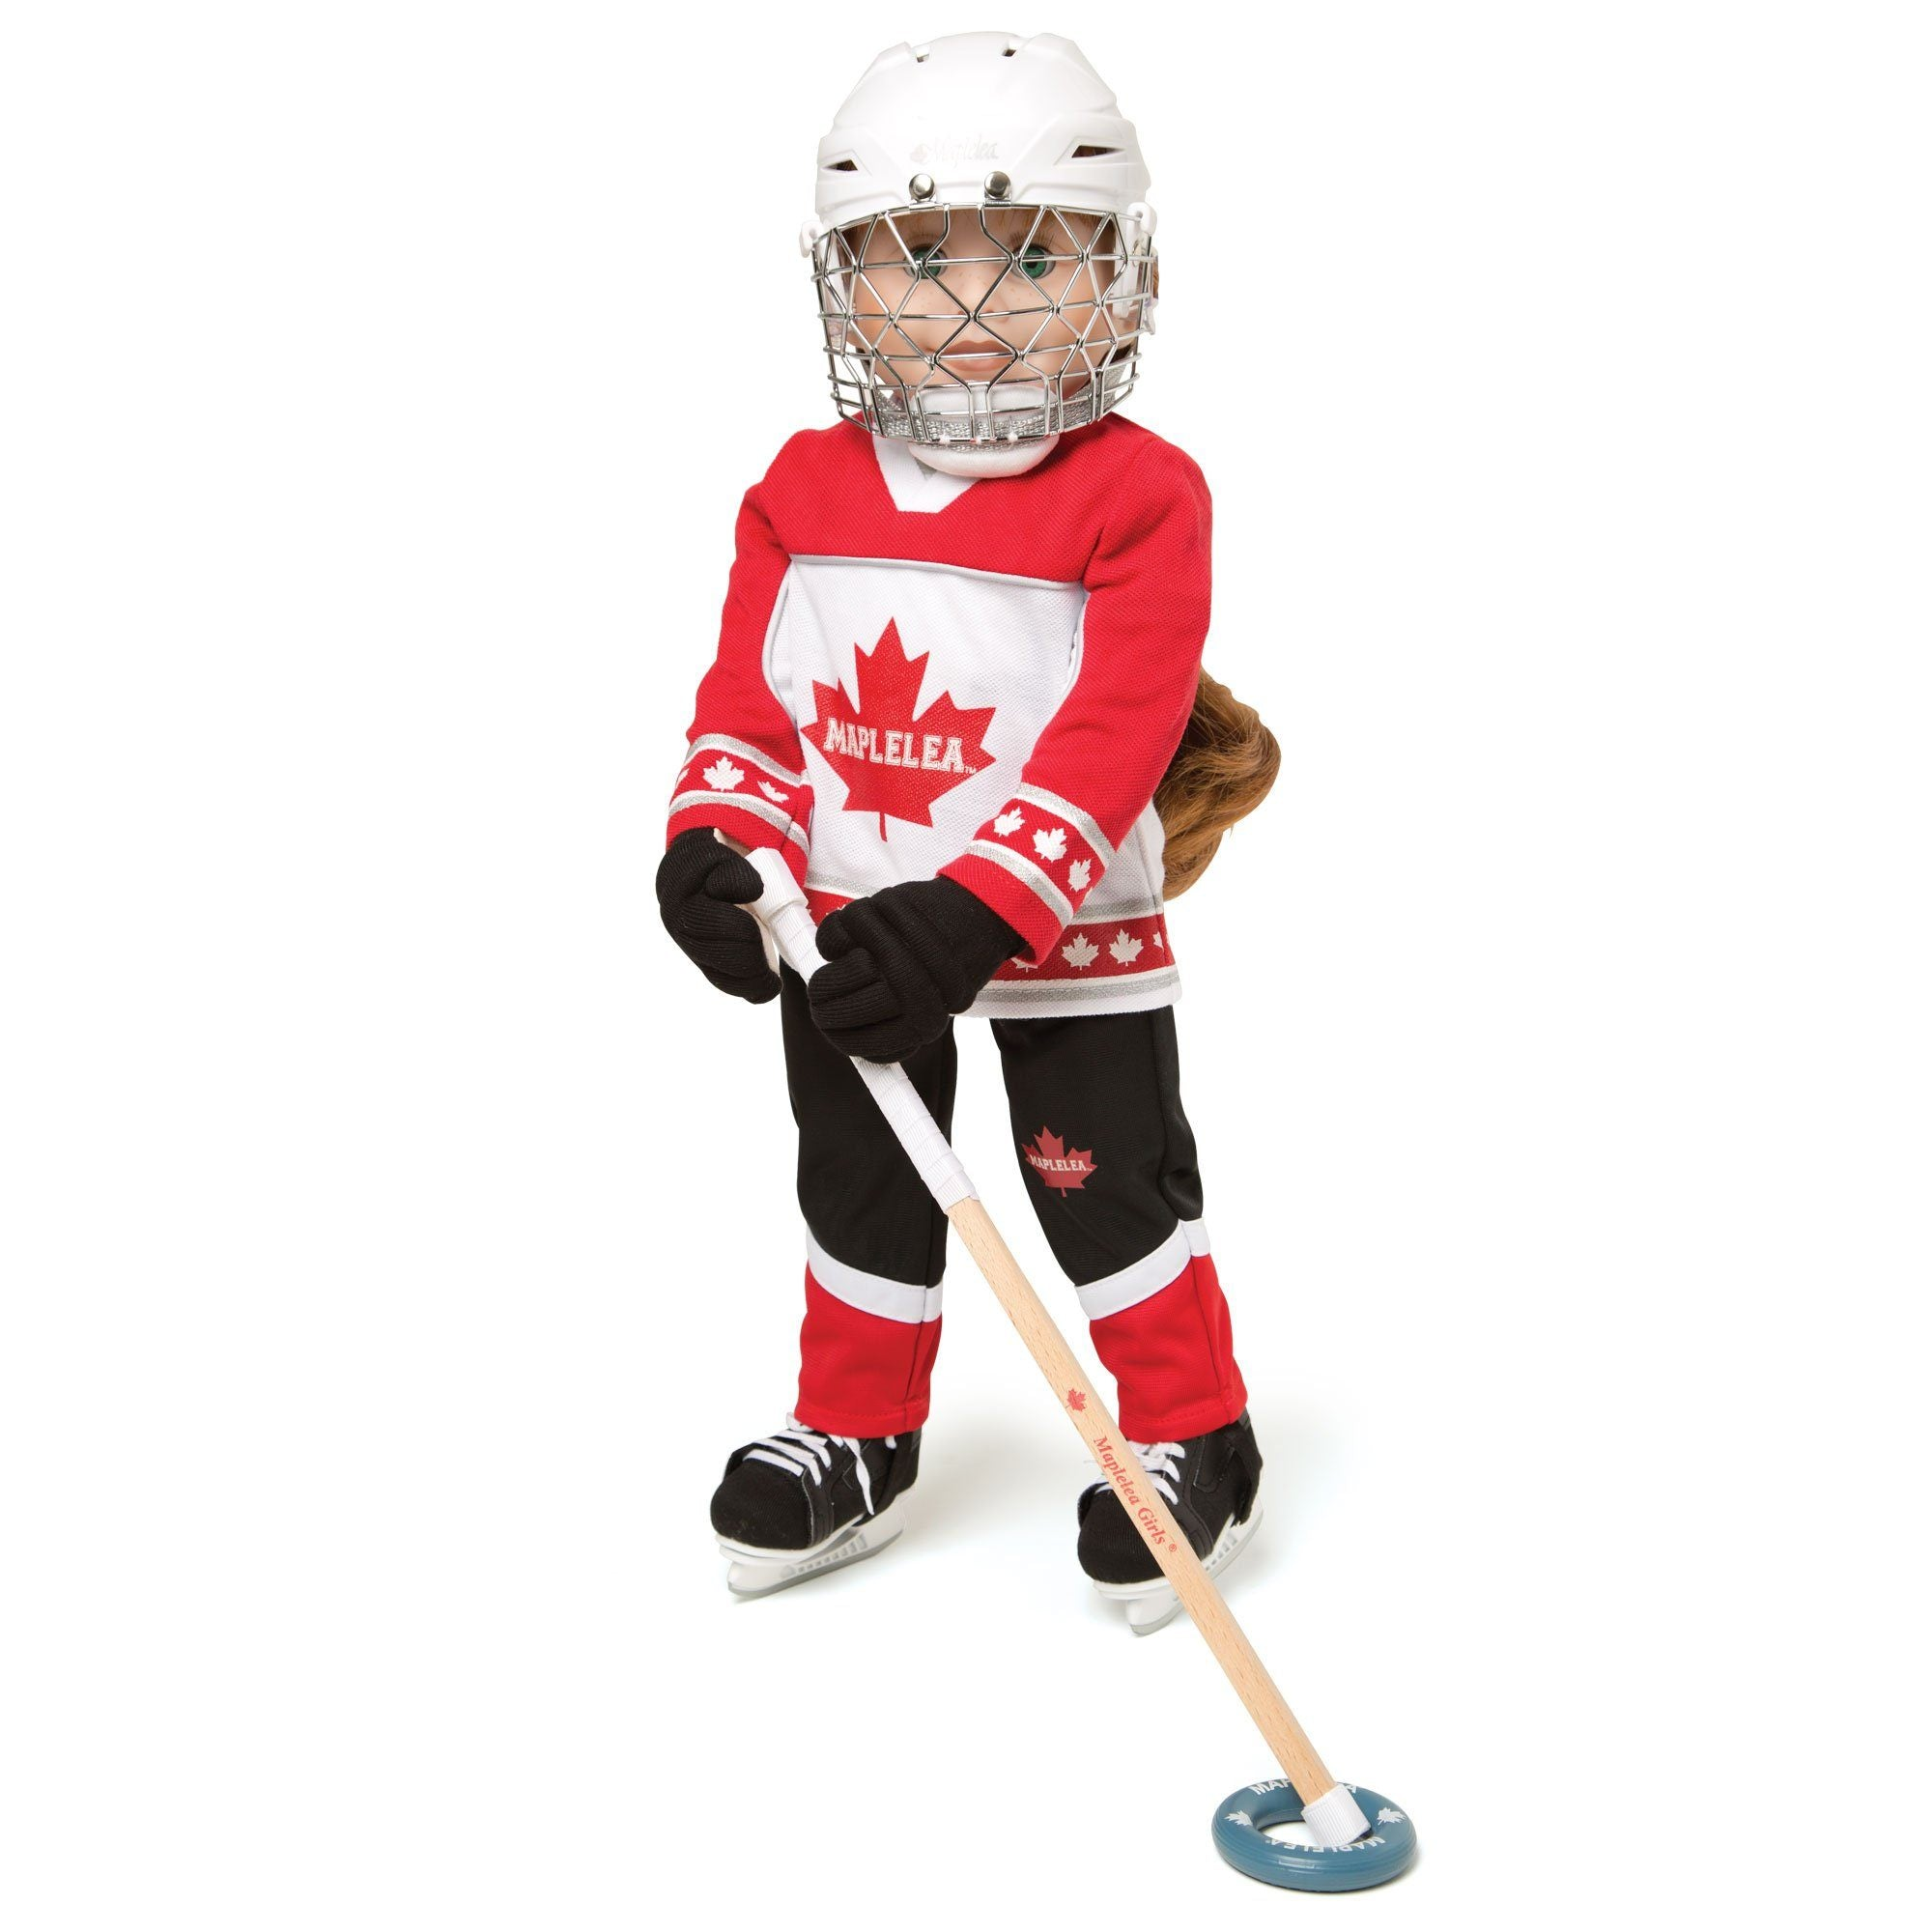 Hockey Skates fit all 18 inch dolls.